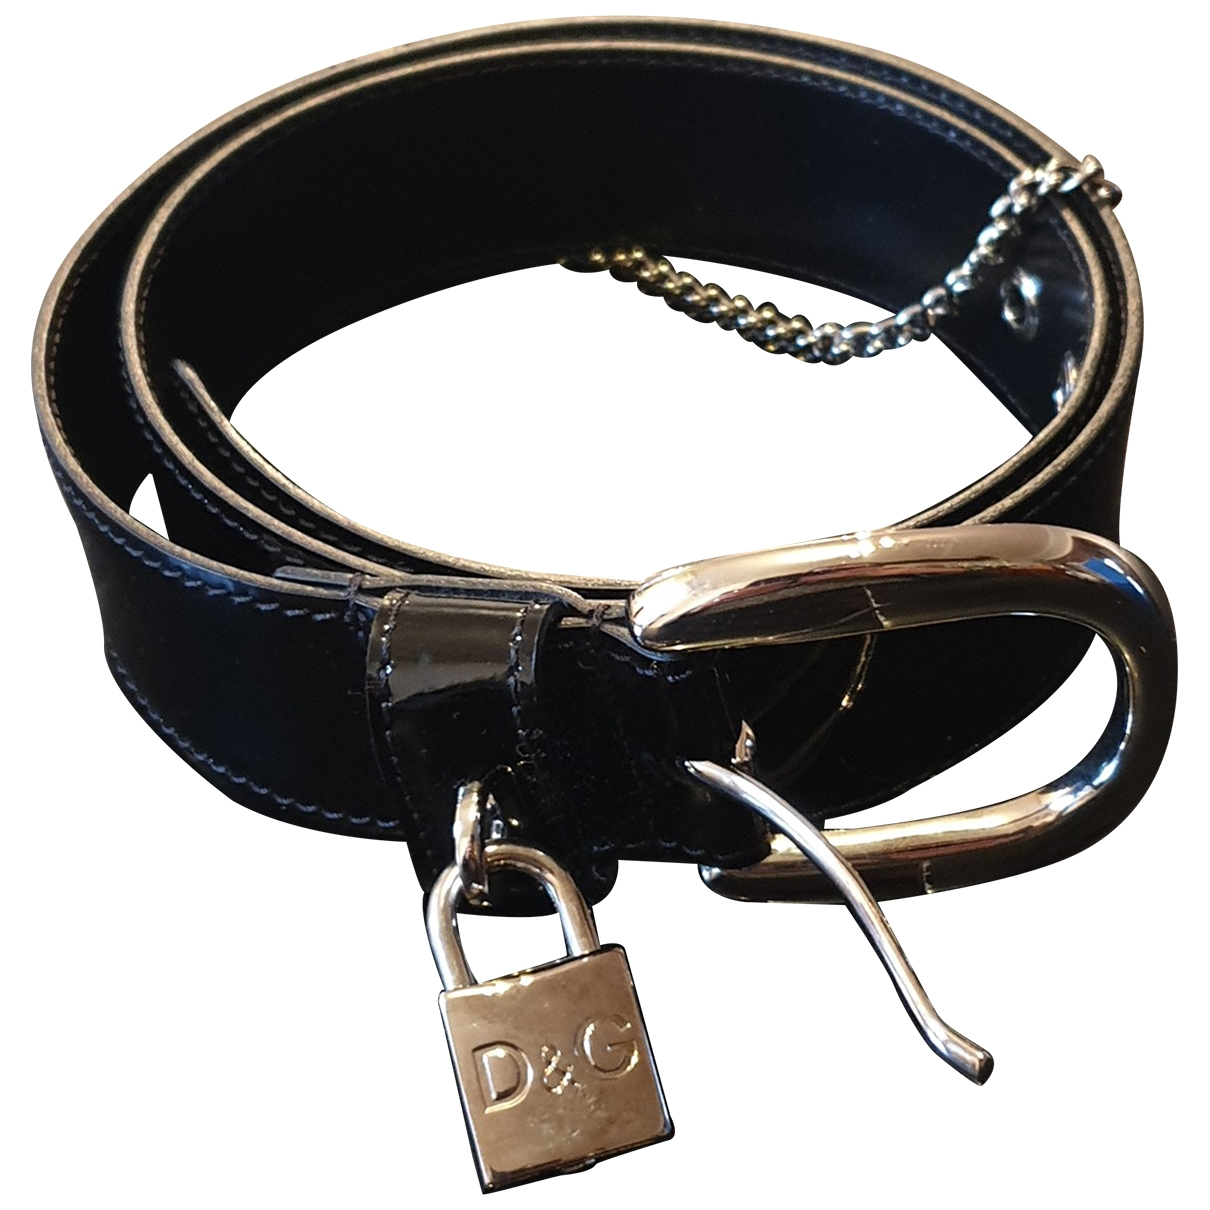 D&g \N Black Leather belt for Women 90 cm